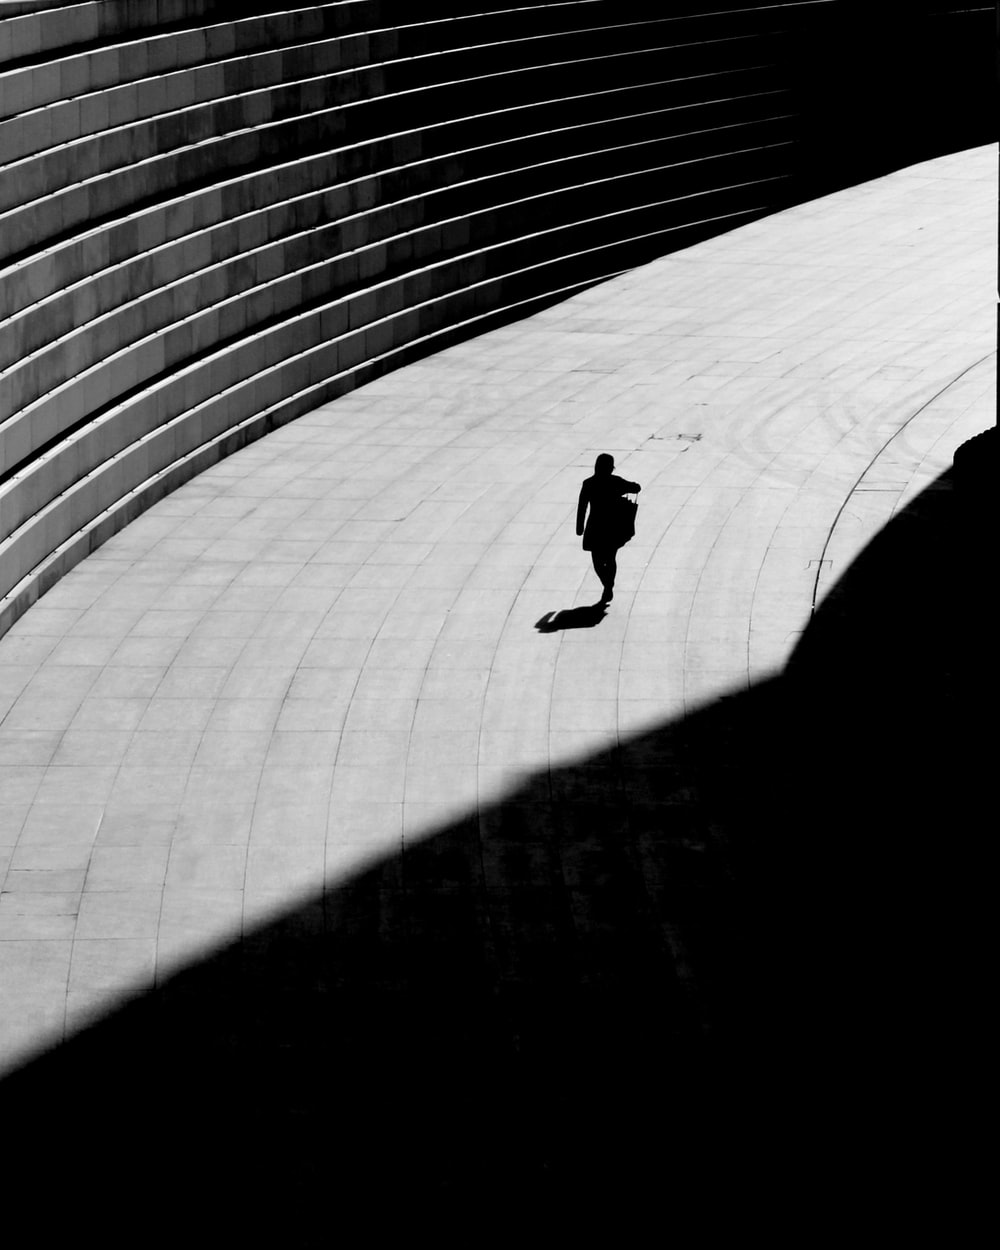 silhouette of a person walking on gray concrete floor